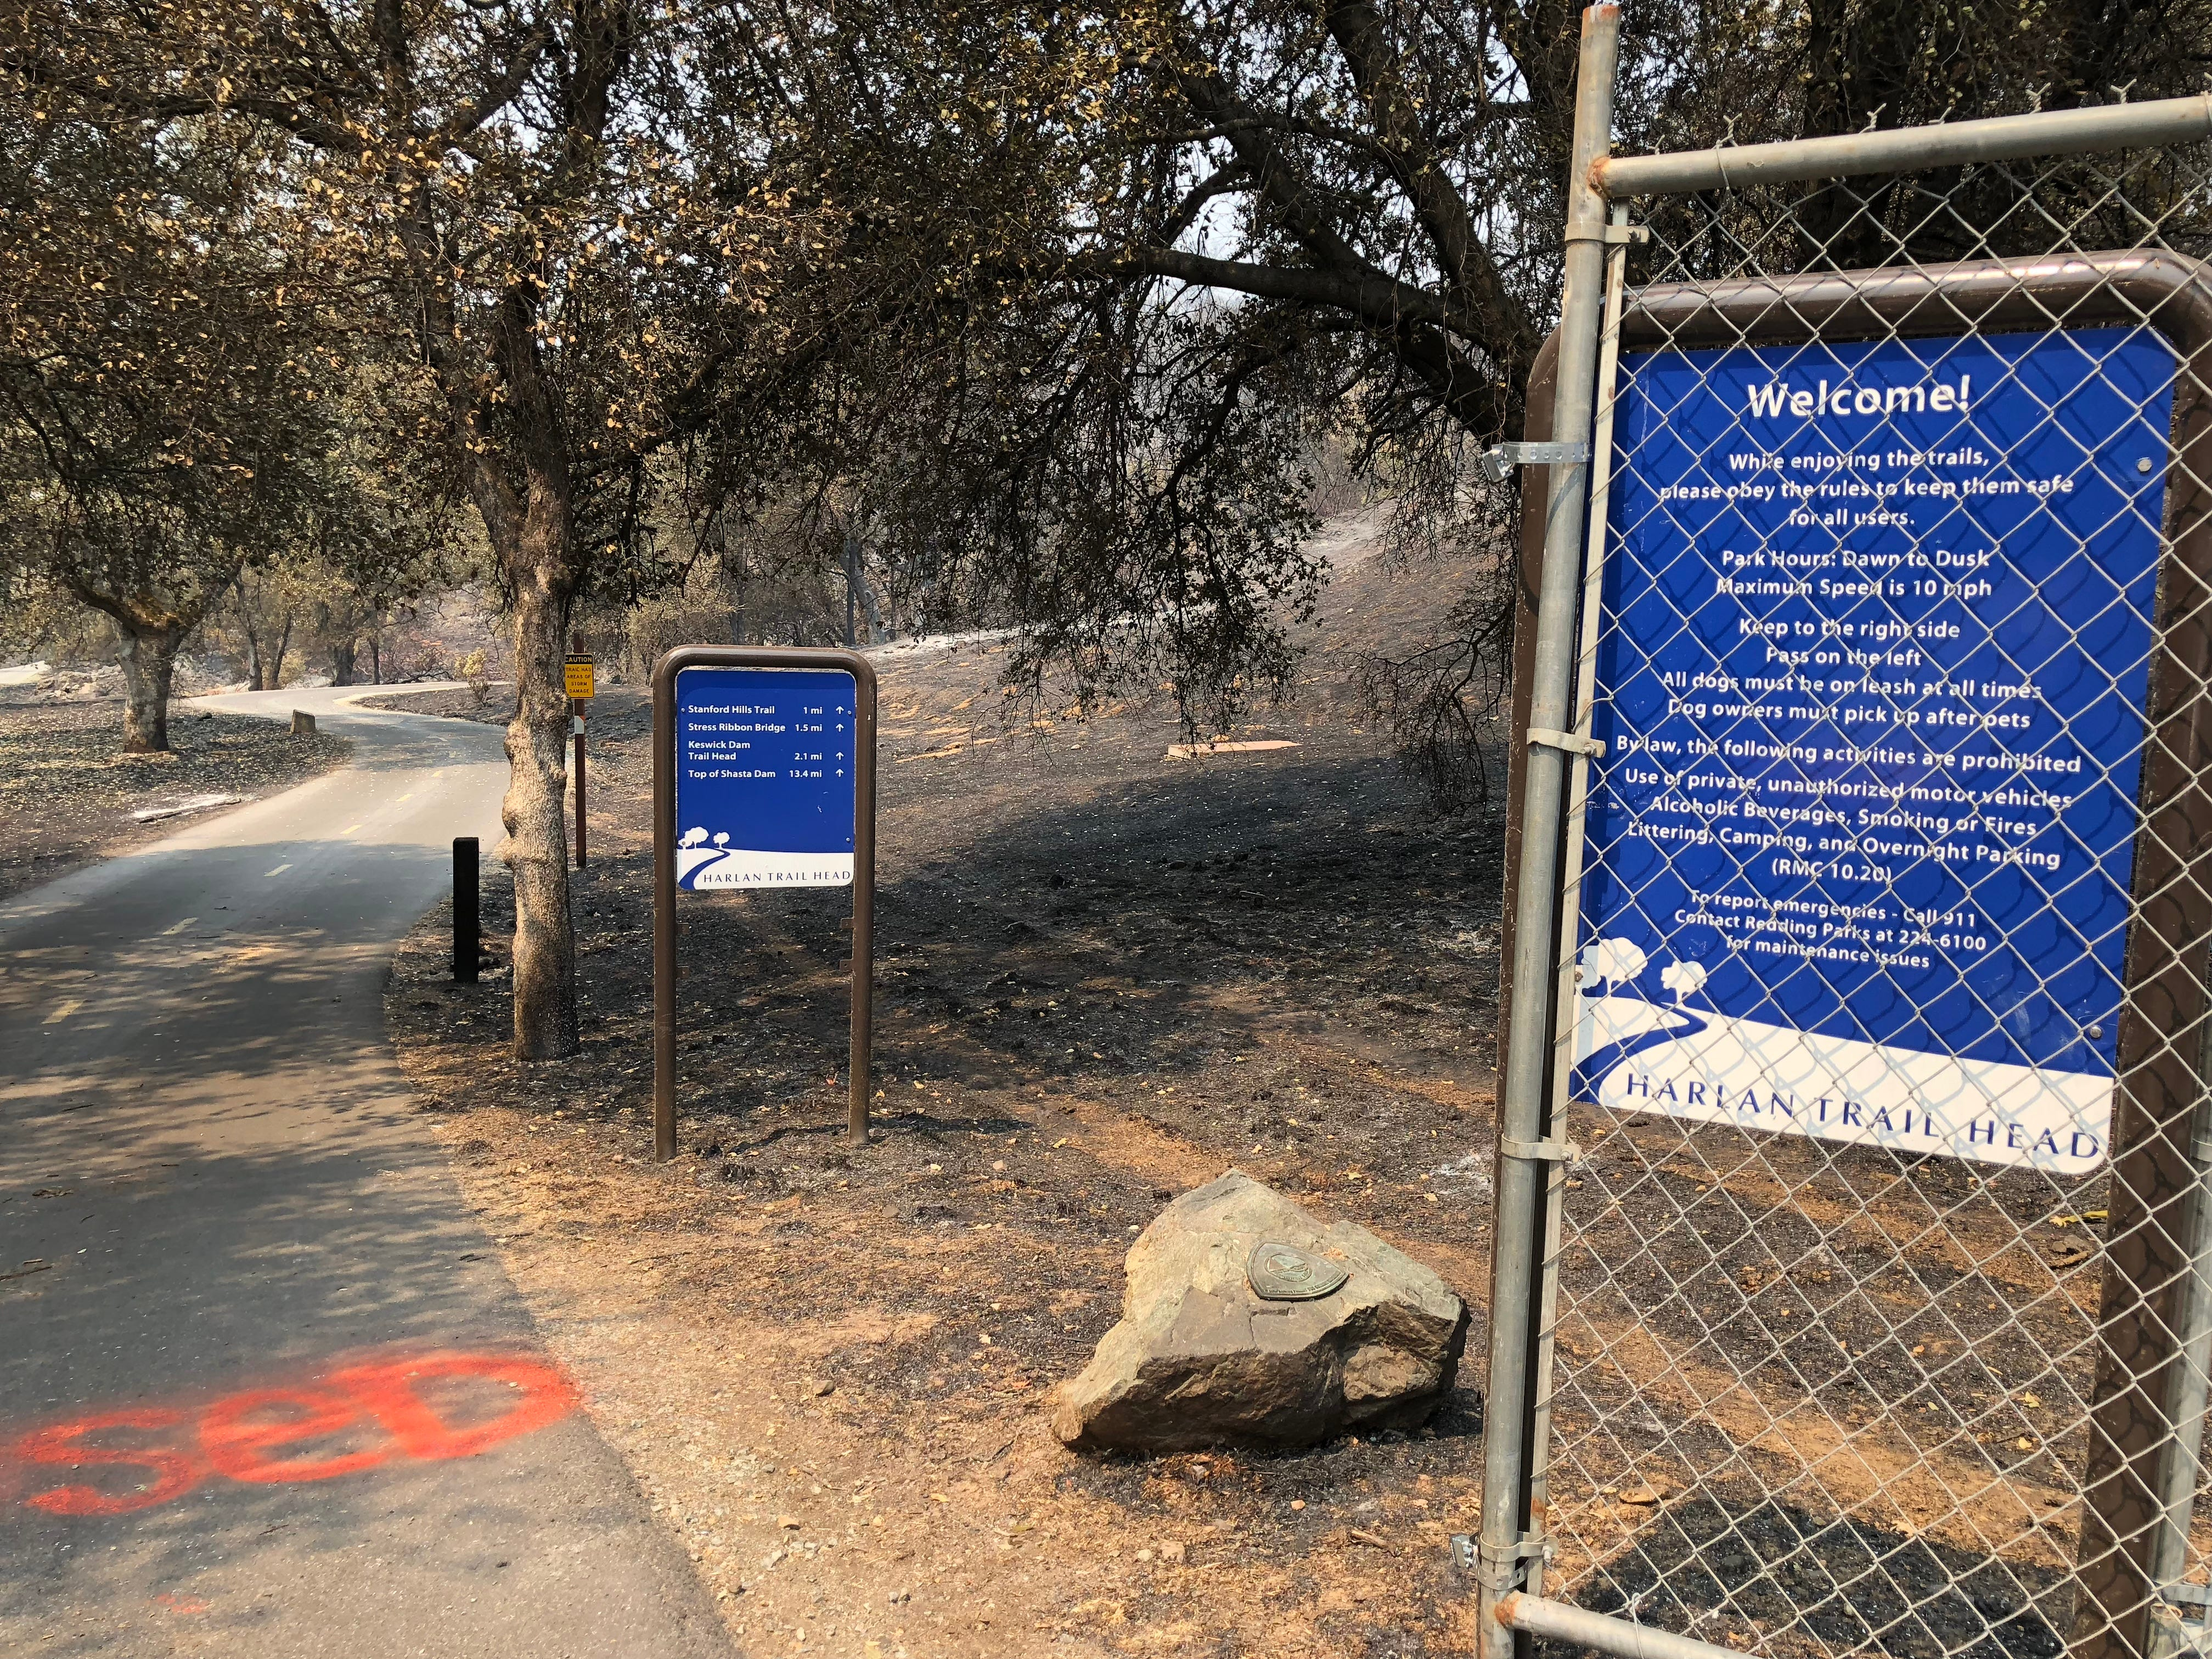 The Harlan Trailhead, serving as an access point to the Sacramento River Trail at the end of Harlan Drive in the Lake Redding area, suffered some Carr Fire damage. As residents returned to the newly repopulated area on Friday, this chain-link fence wasn't blocking access to the trail. But officials have advised not to use the trail.